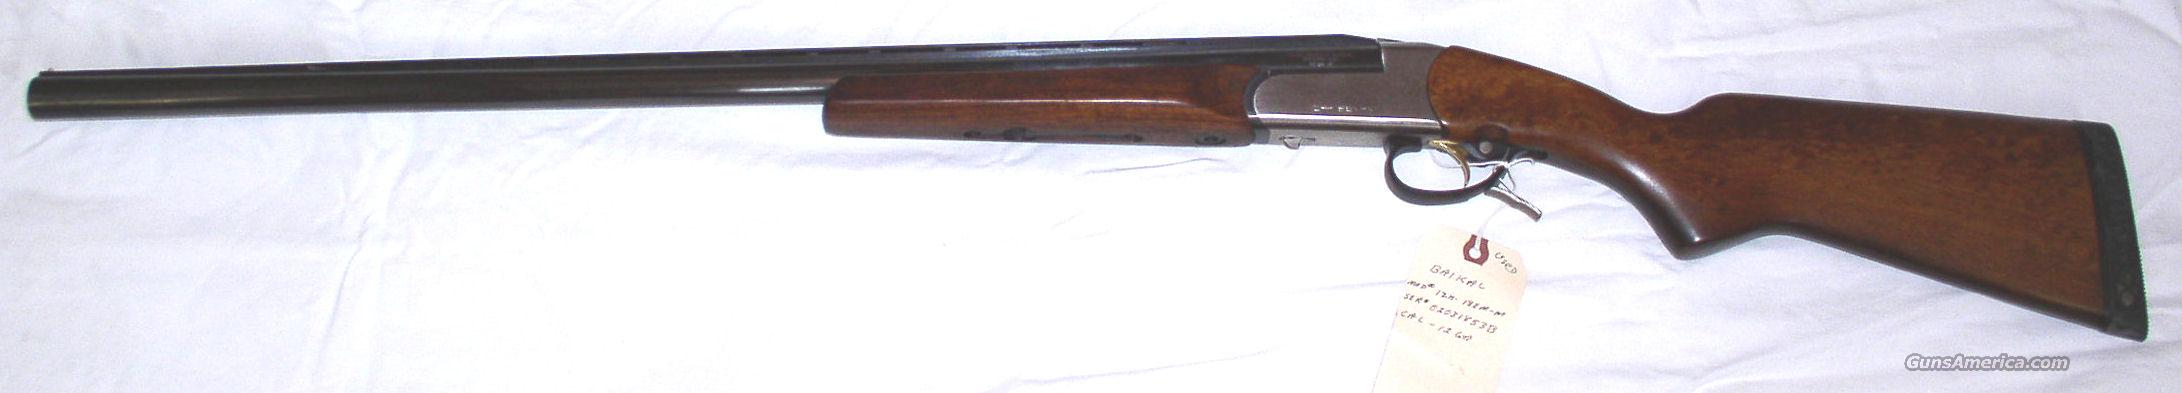 Baikel    Model  1ZH18EM  Guns > Shotguns > Baikal Shotguns > Single Shot